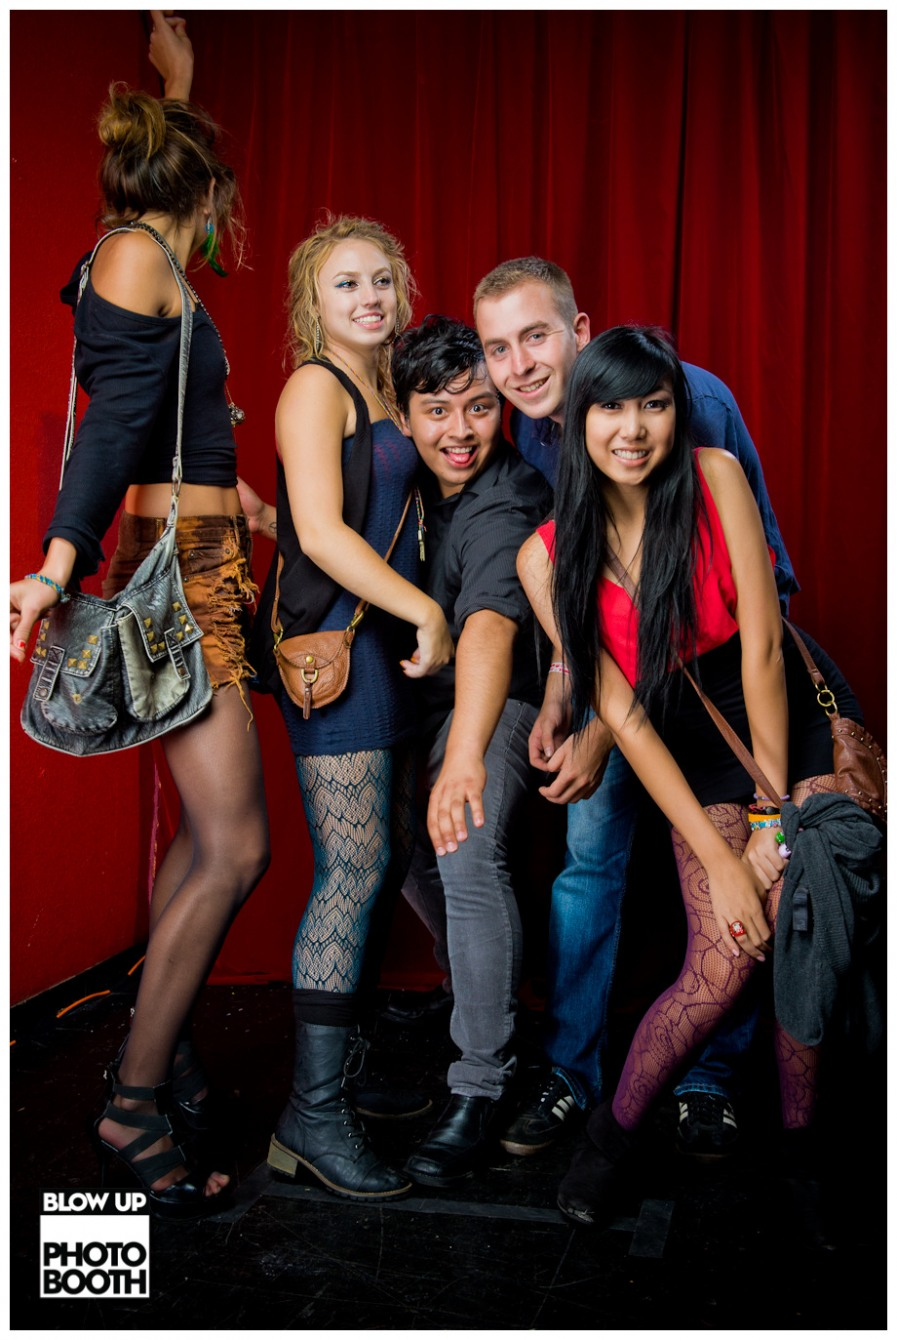 blow_up_8-27-2011-3298